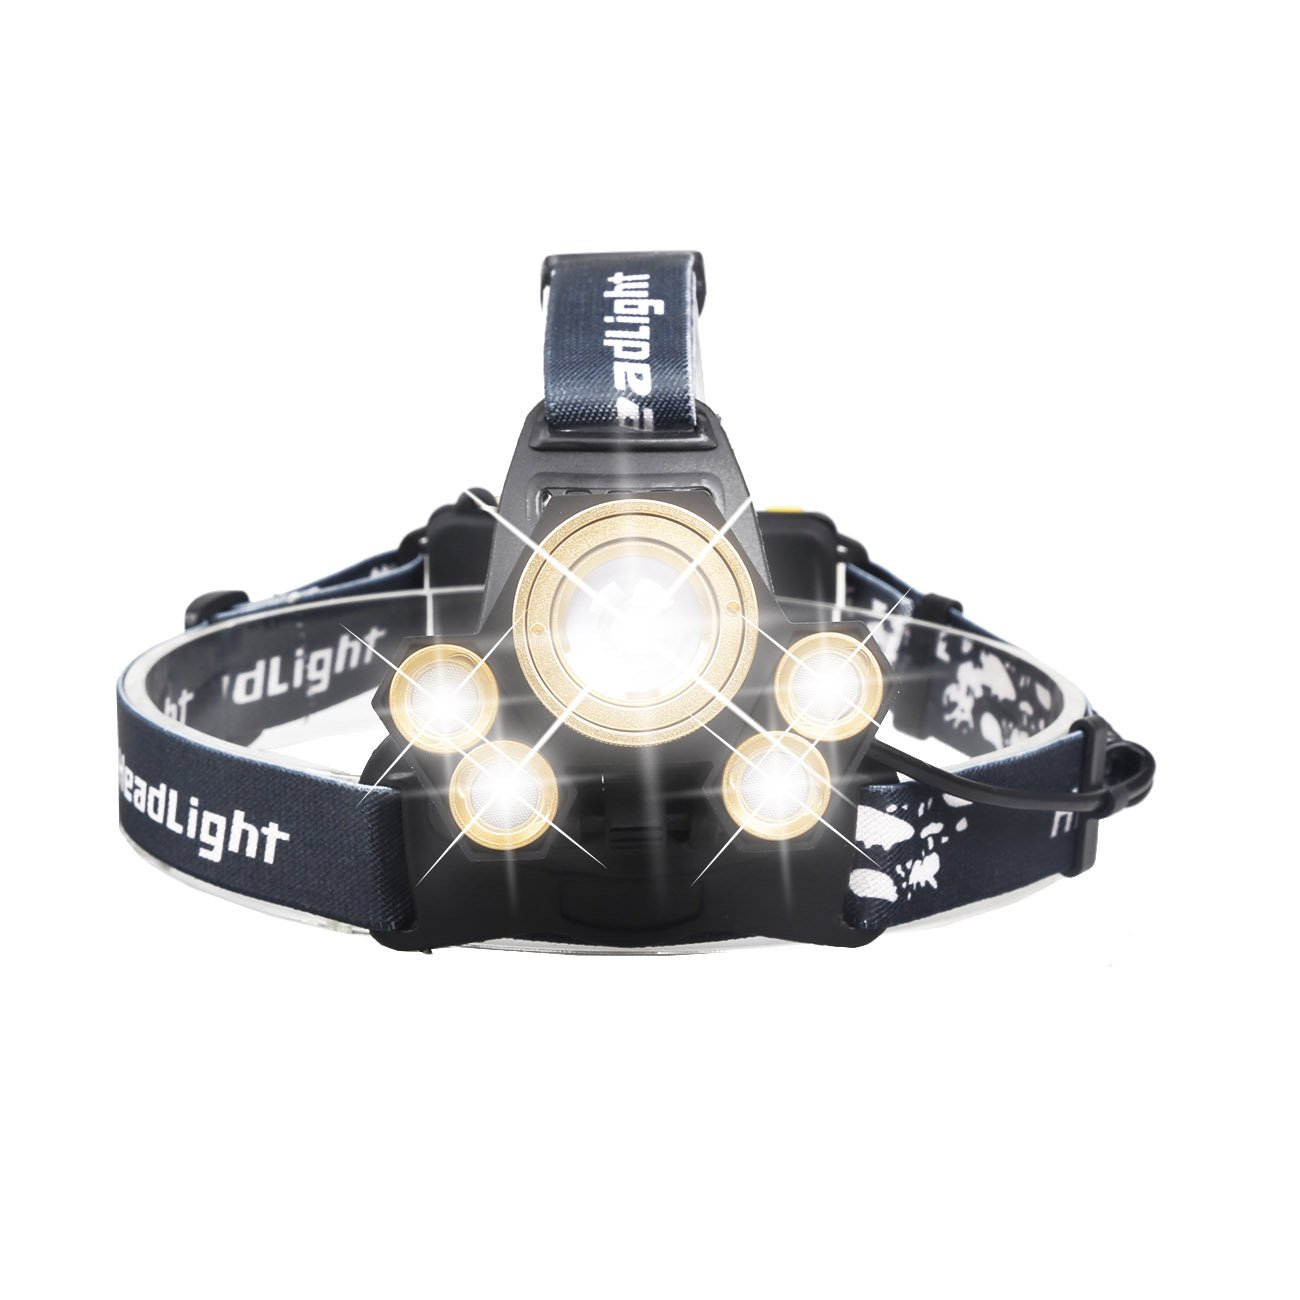 HeCloud 5xT6 LED Headlamp Tactical Headlight with USB Cabel and Rechargerable 18650 Battery